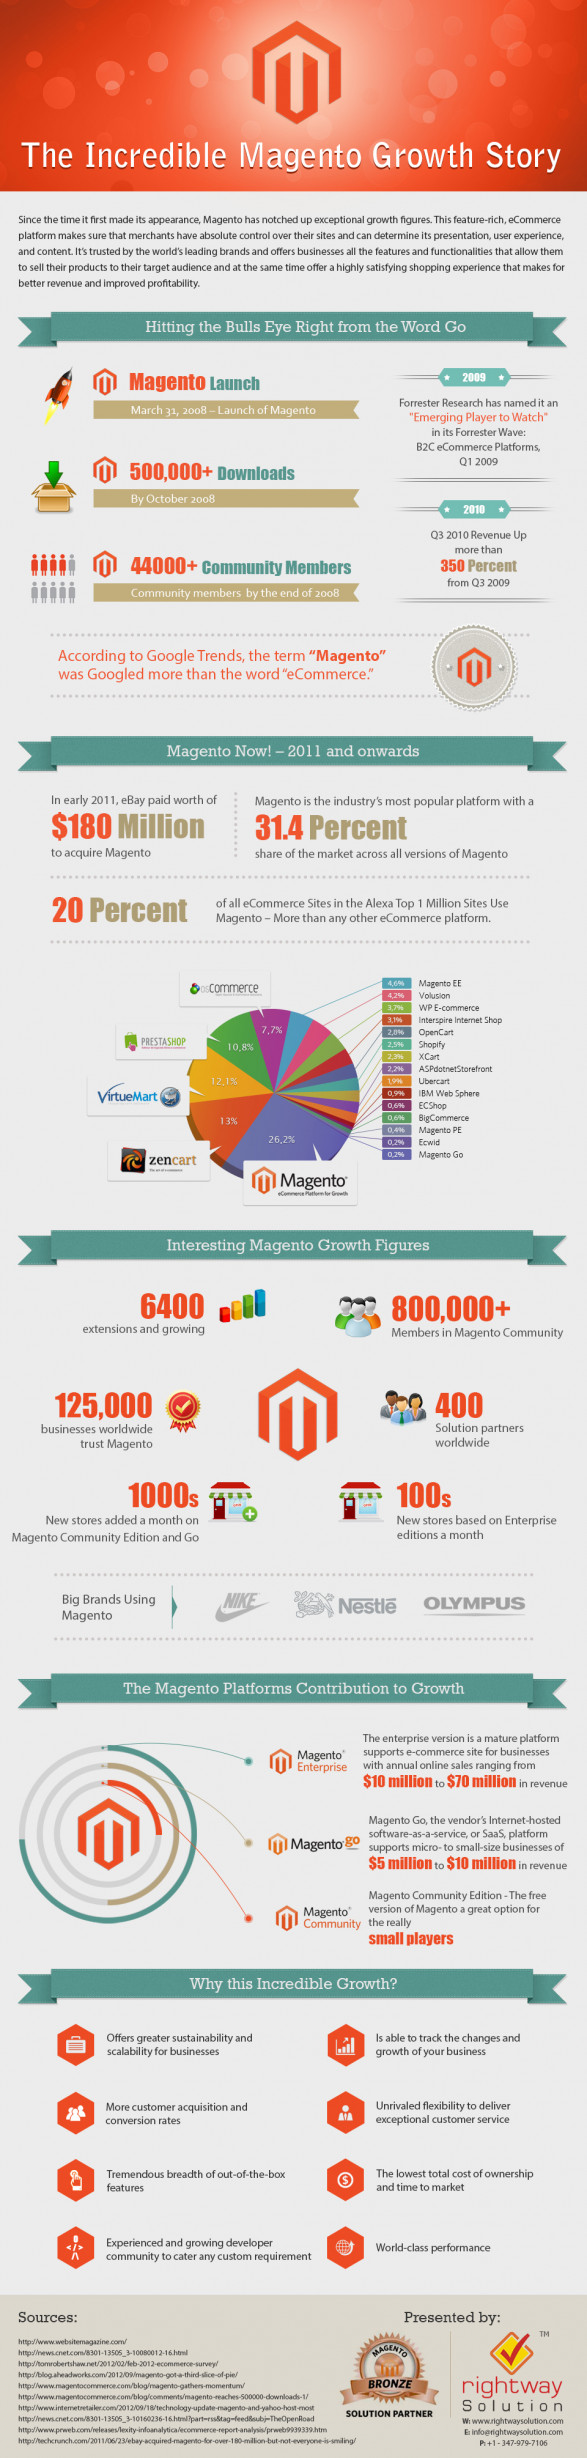 Magento the most powerful online eCommerce platform in the universe